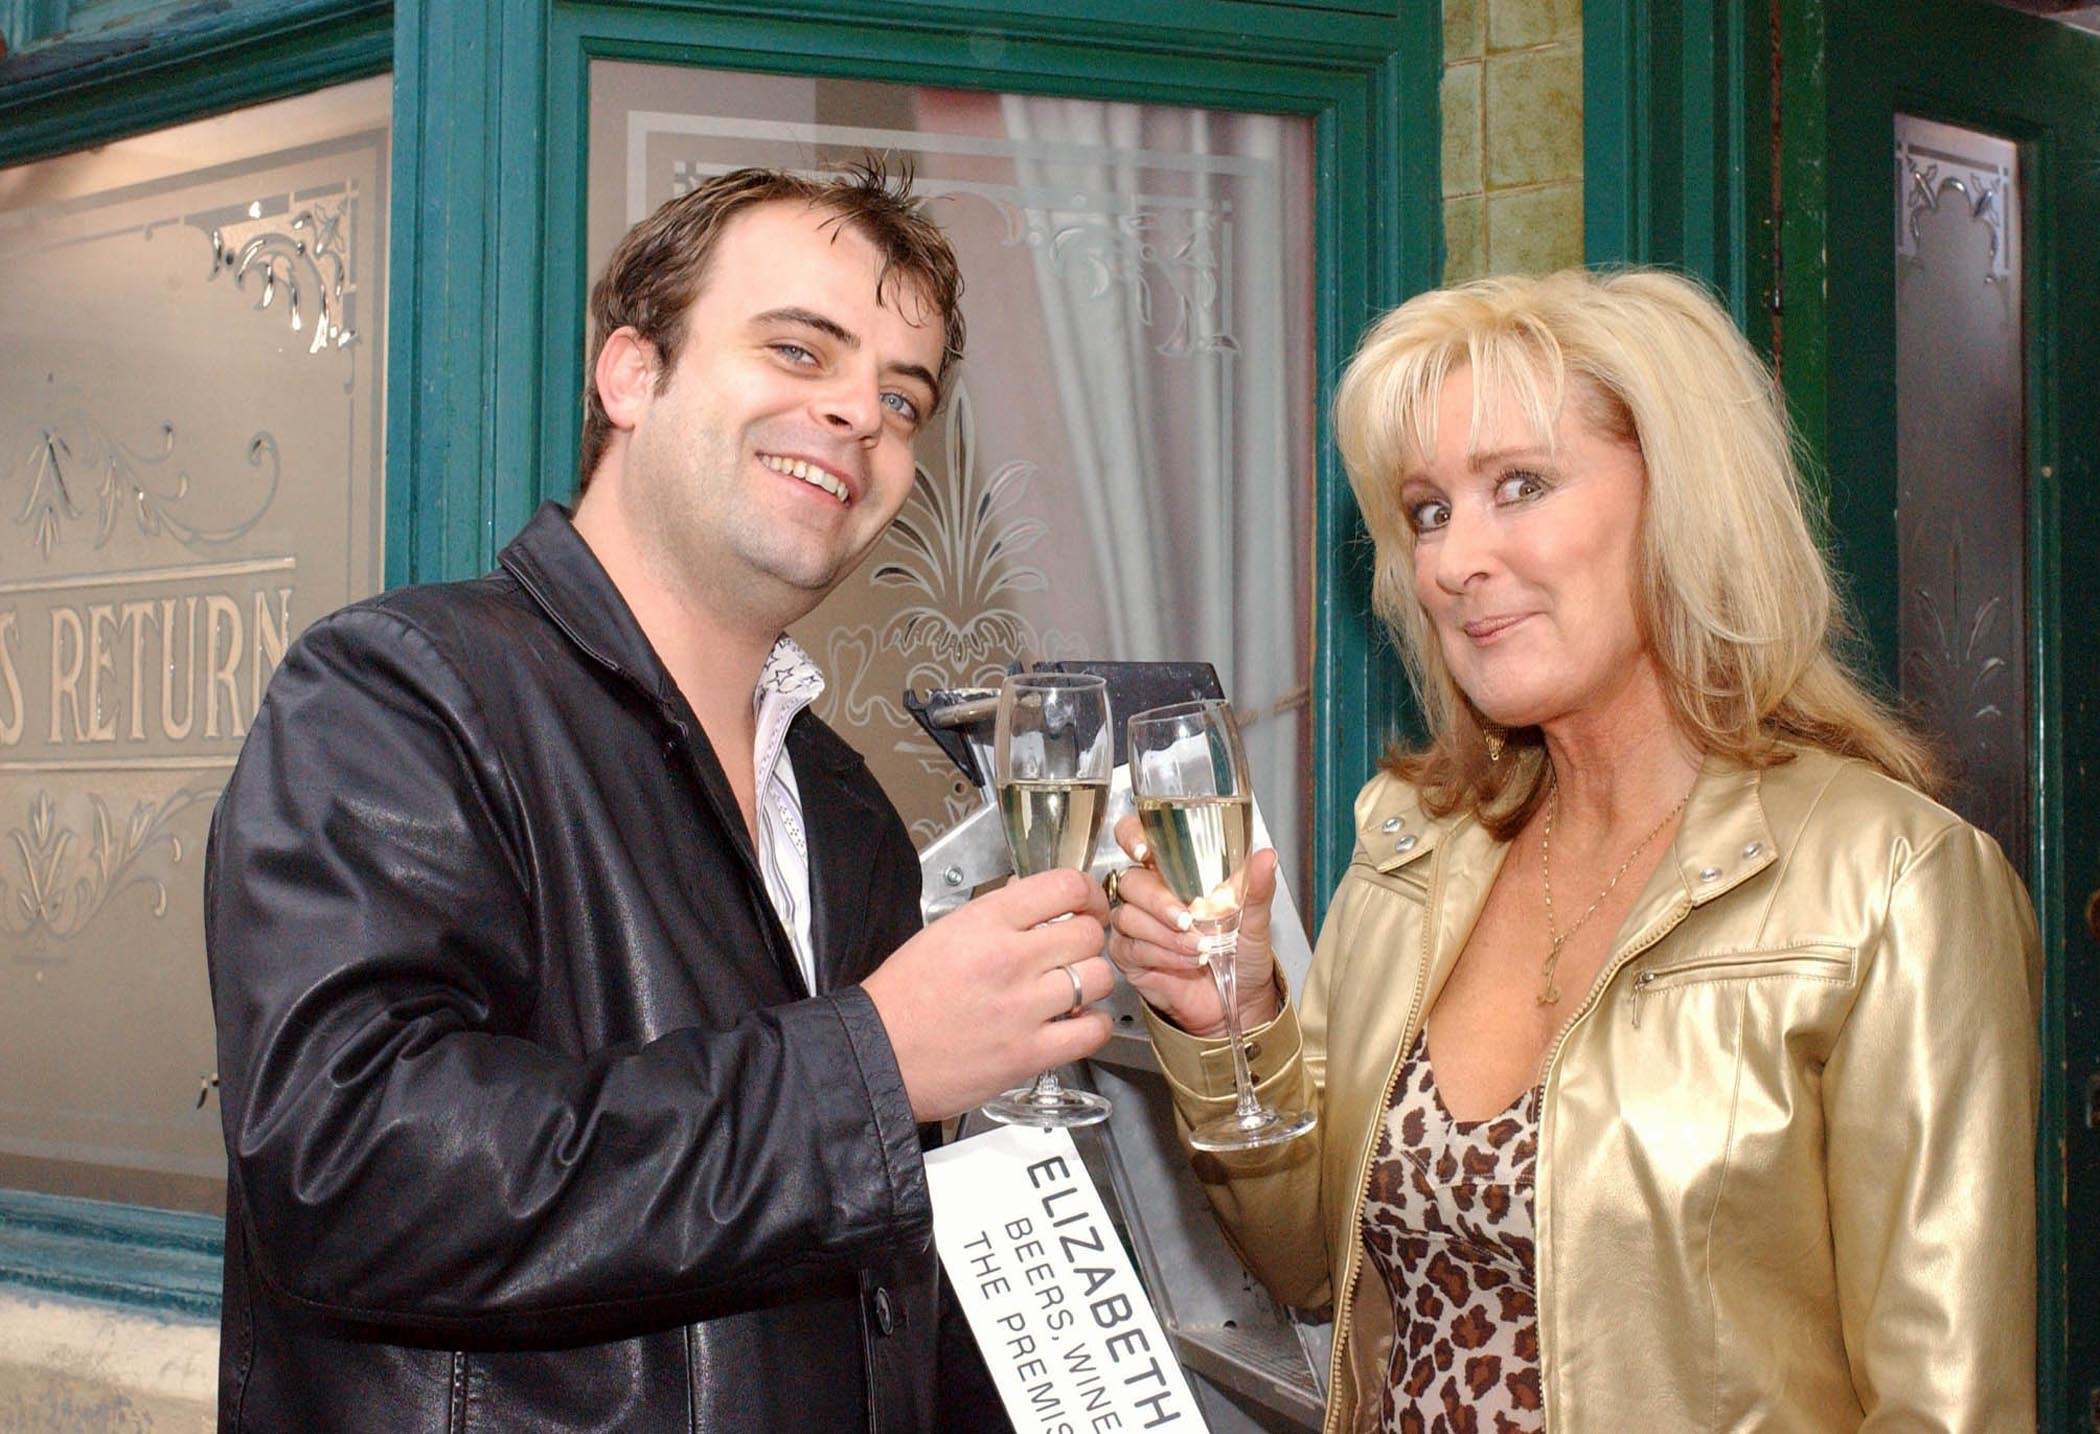 Editorial use only. Exclusive - Premium Rates Apply. Call your Account Manager for pricing. Mandatory Credit: Photo by ITV/REX/Shutterstock (764166bo) 'Coronation Street' TV - 2006 - Steve McDonald (SIMON GREGSON) and Liz McDonald (BEVERLEY CALLARD) Make a toast to their new future in the Rovers ITV ARCHIVE